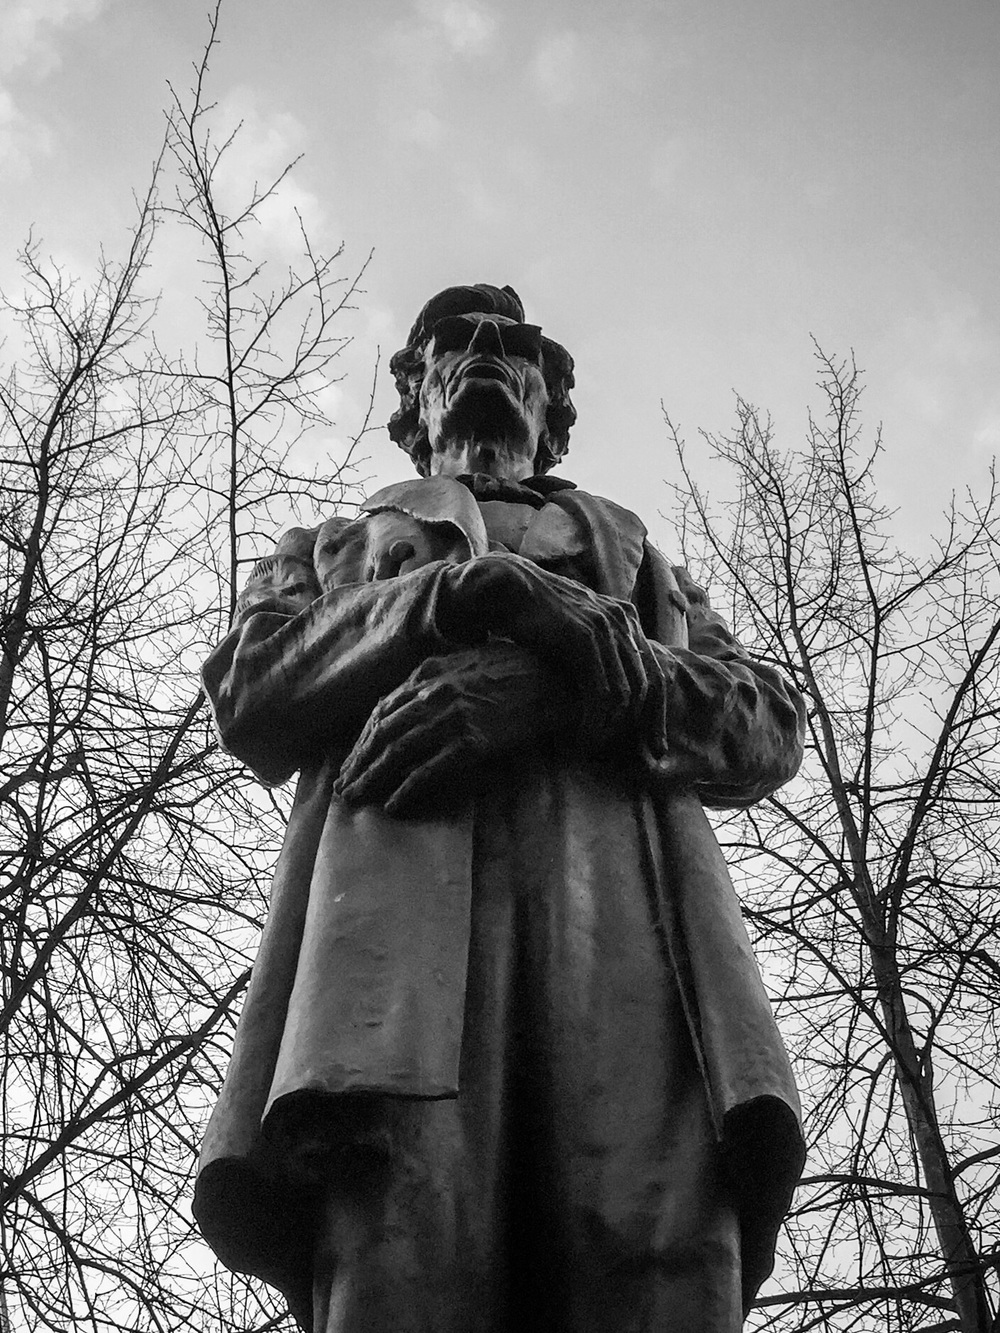 Abraham Lincoln, 16th President of the United States. Photography © Adrian McGarry 2016